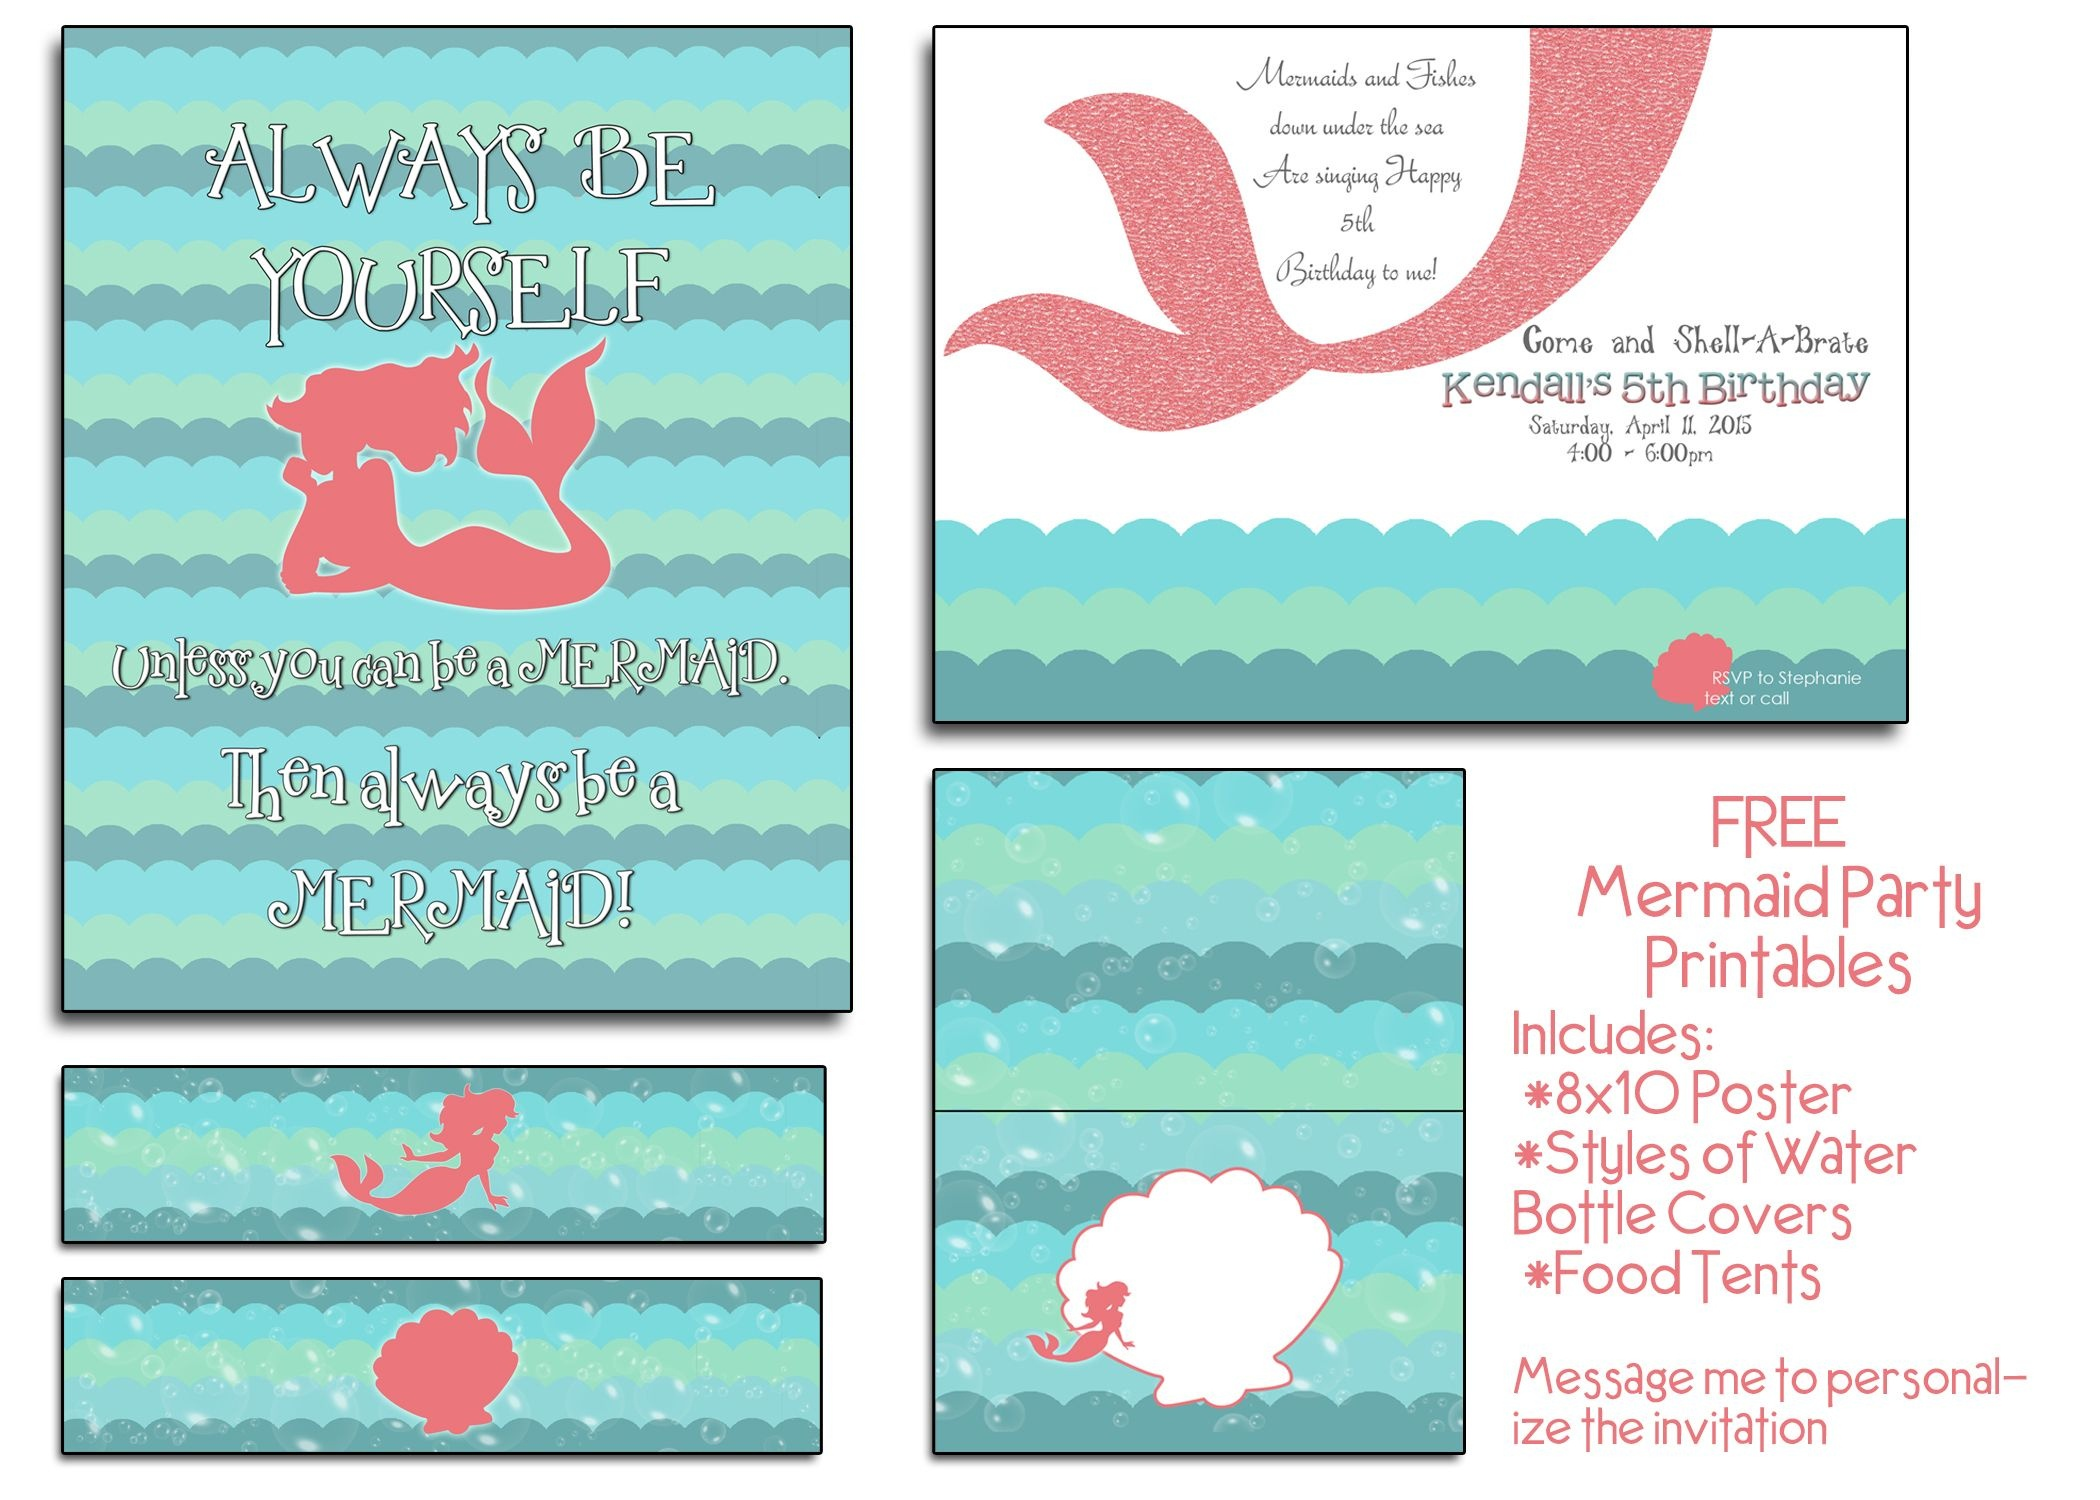 Free Mermaid Party Printables! I Will Even Customize The Invite At - Mermaid Party Invitations Printable Free